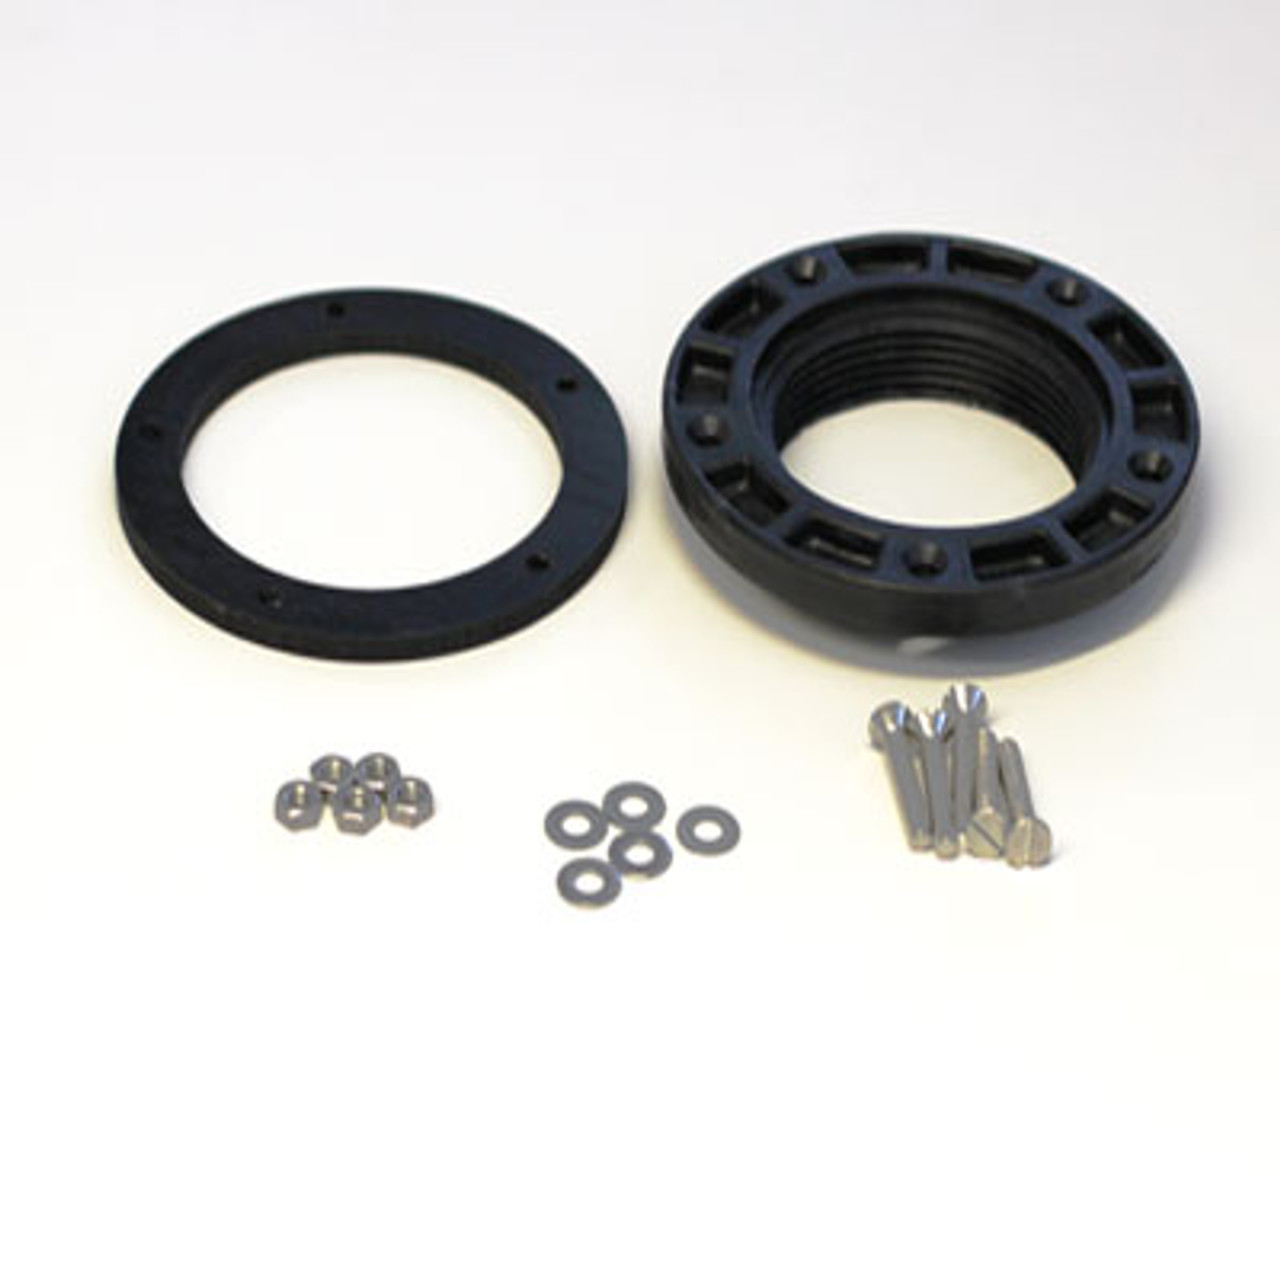 """This universal holding Tank Flange Kit will make it possible to install a tank guage in a tank that does not have the common 3"""" female fitting already installed. It comes with a gasket and mounting hardware."""